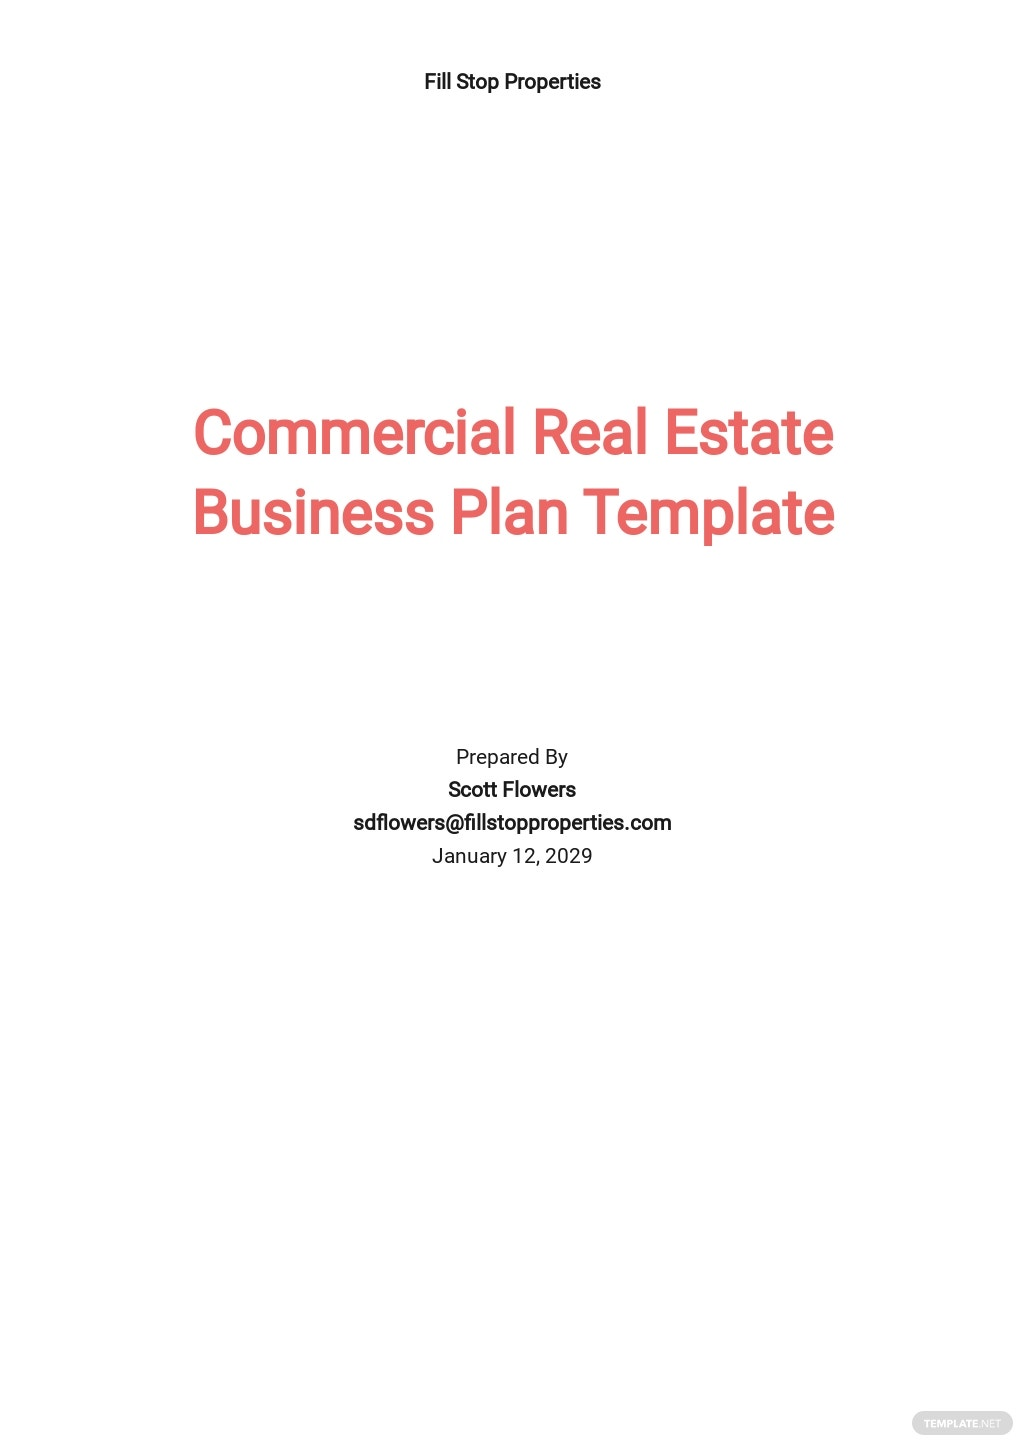 Free Commercial Real Estate Business Plan Template.jpe